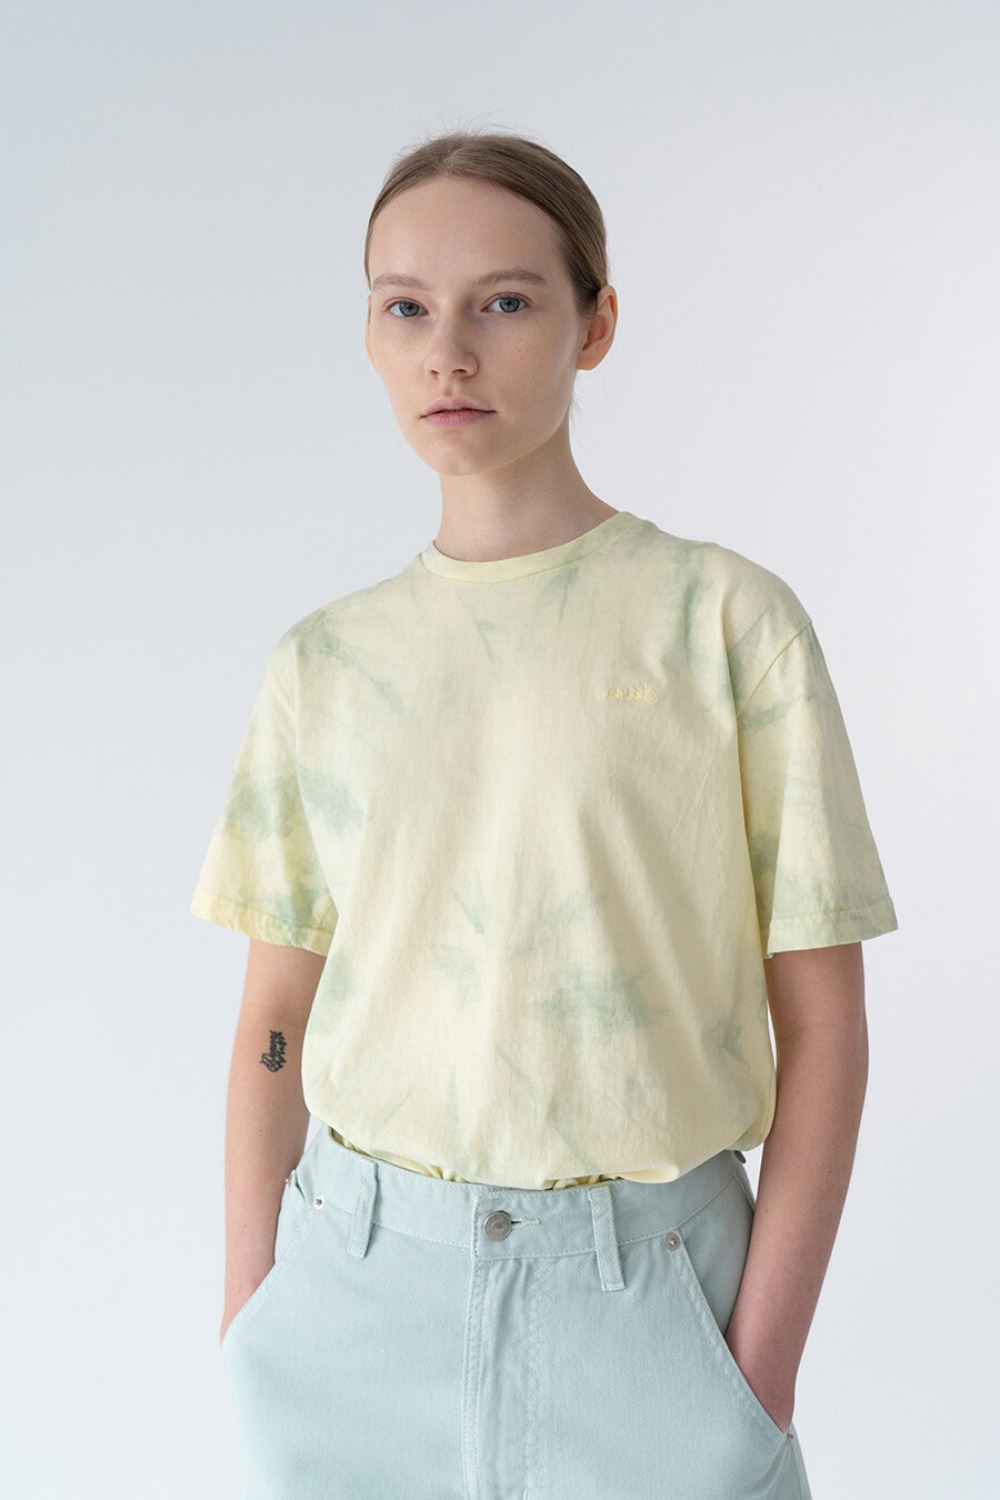 HAND TIE-DYE T-SHIRT LEMON + MINT